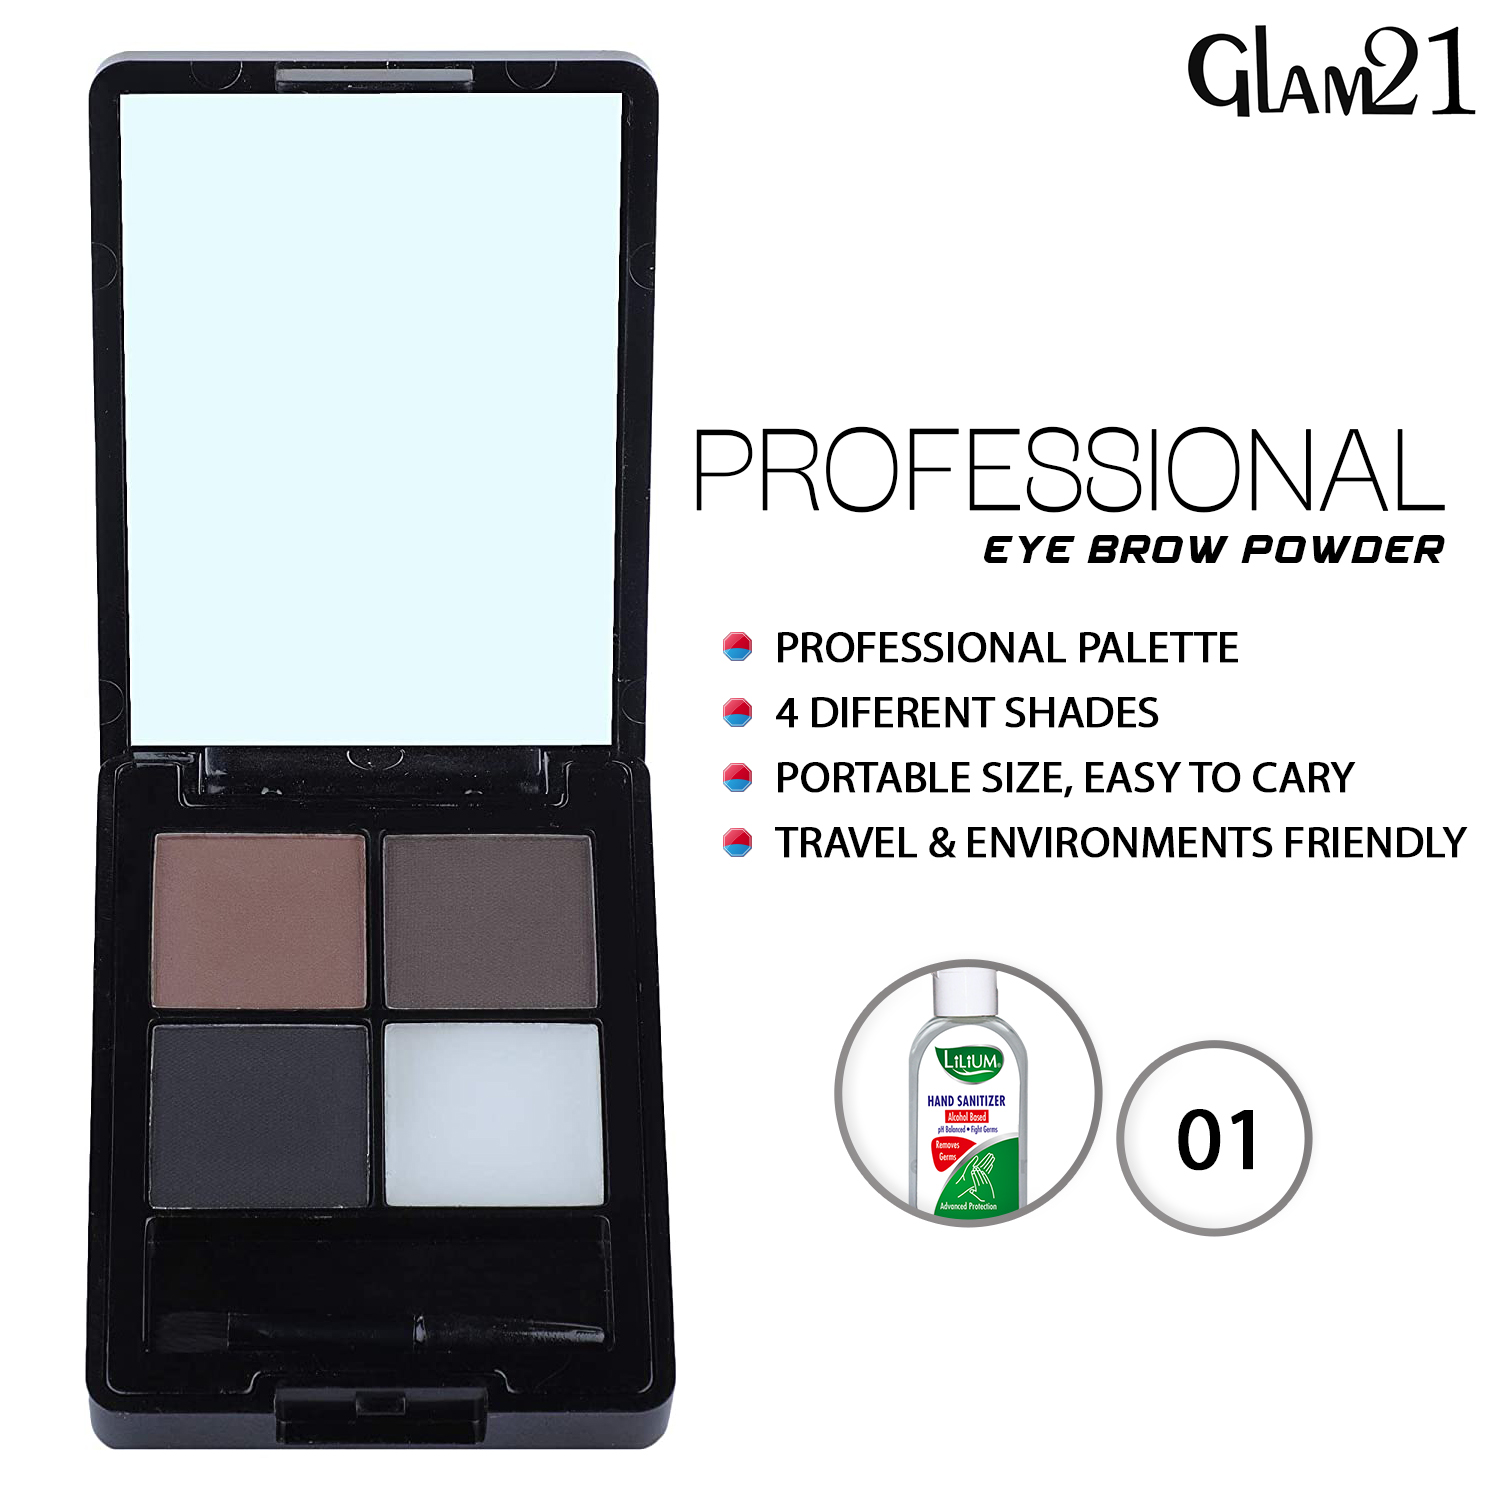 Glam21 Eyebrow Palette, (ES821-01), 9g With Lilium Hand Cleanser